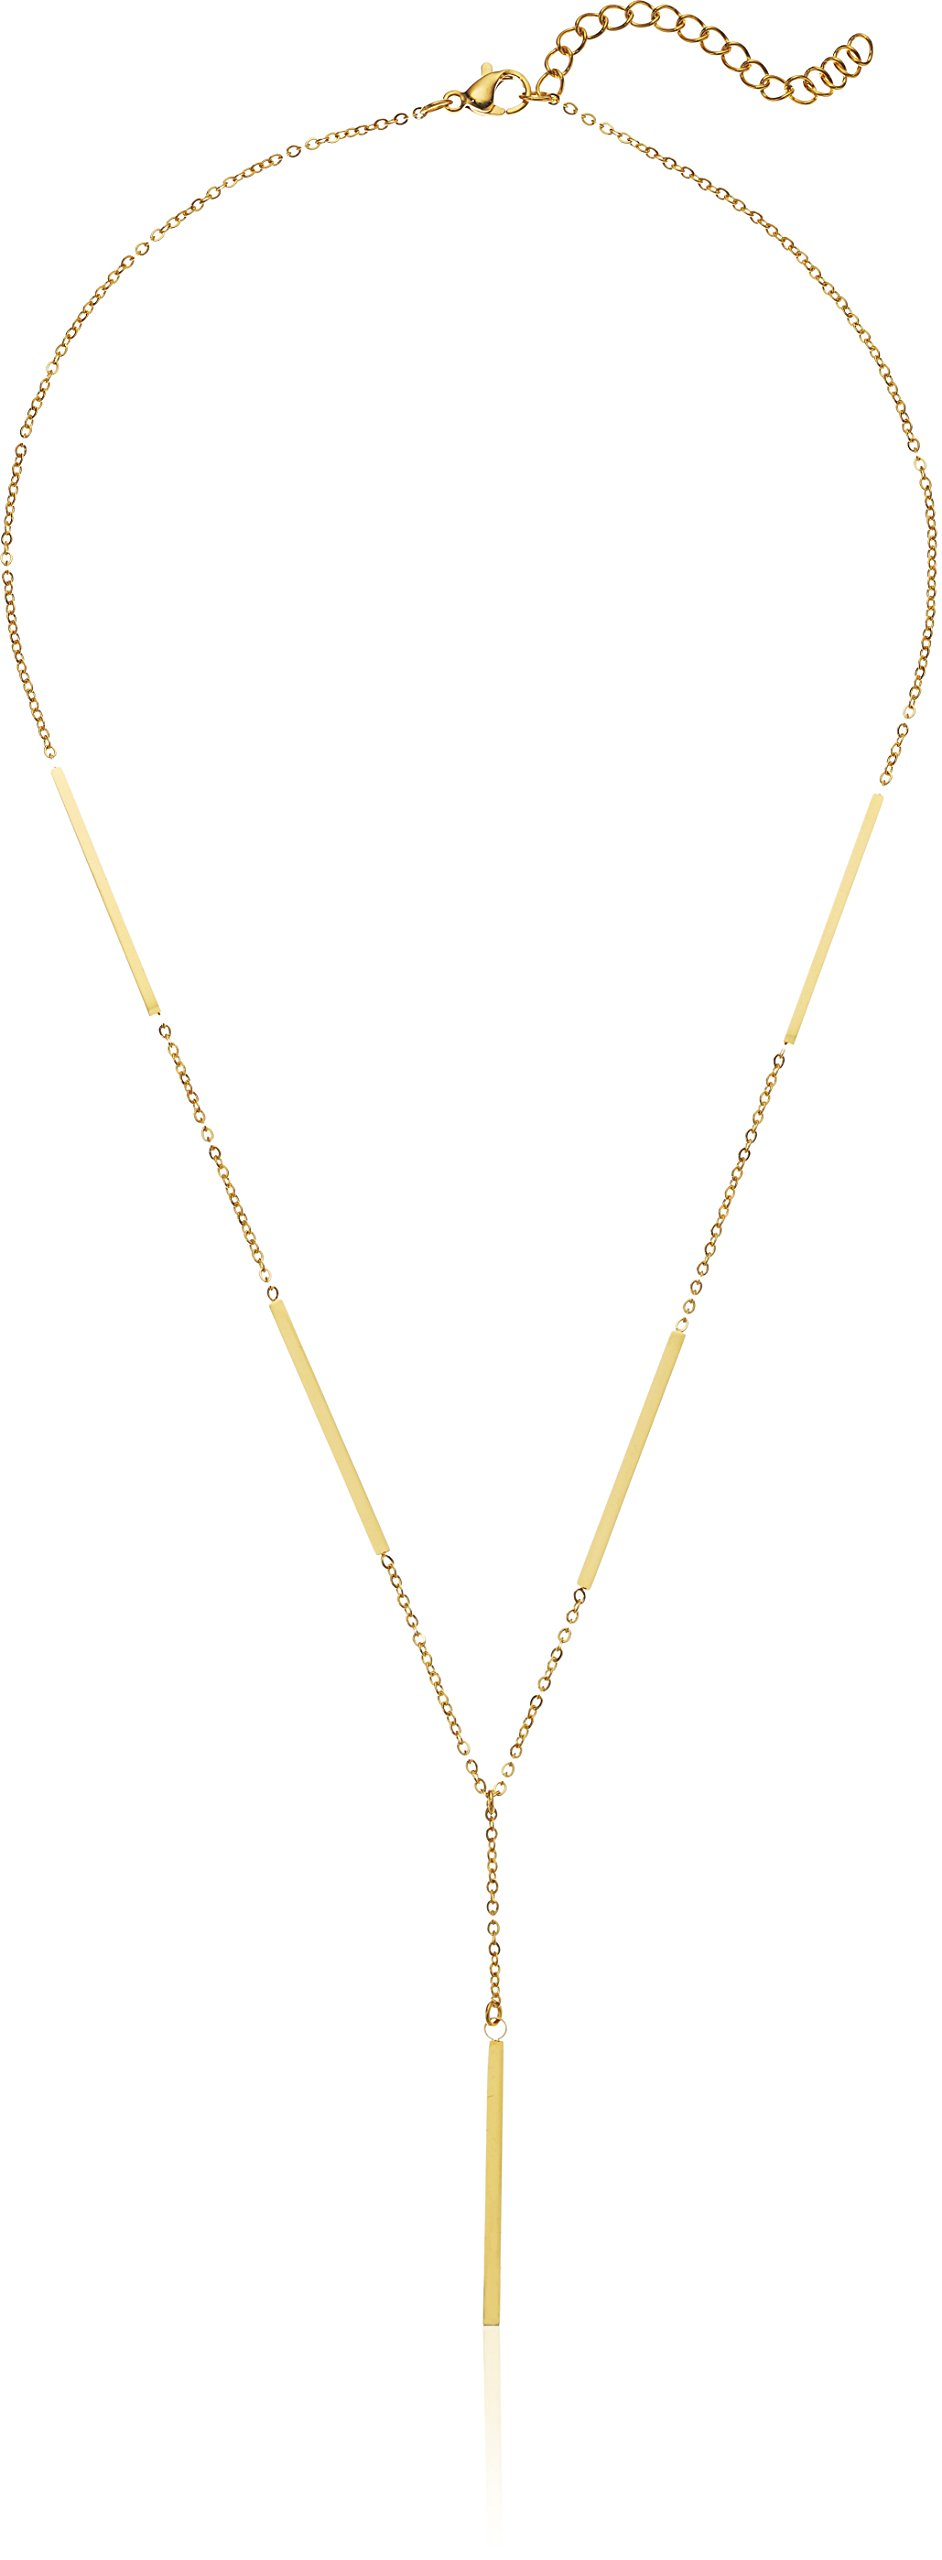 ELYA Jewelry Womens Polished Bar Stainless Steel Y Shaped Necklace, Gold, One Size